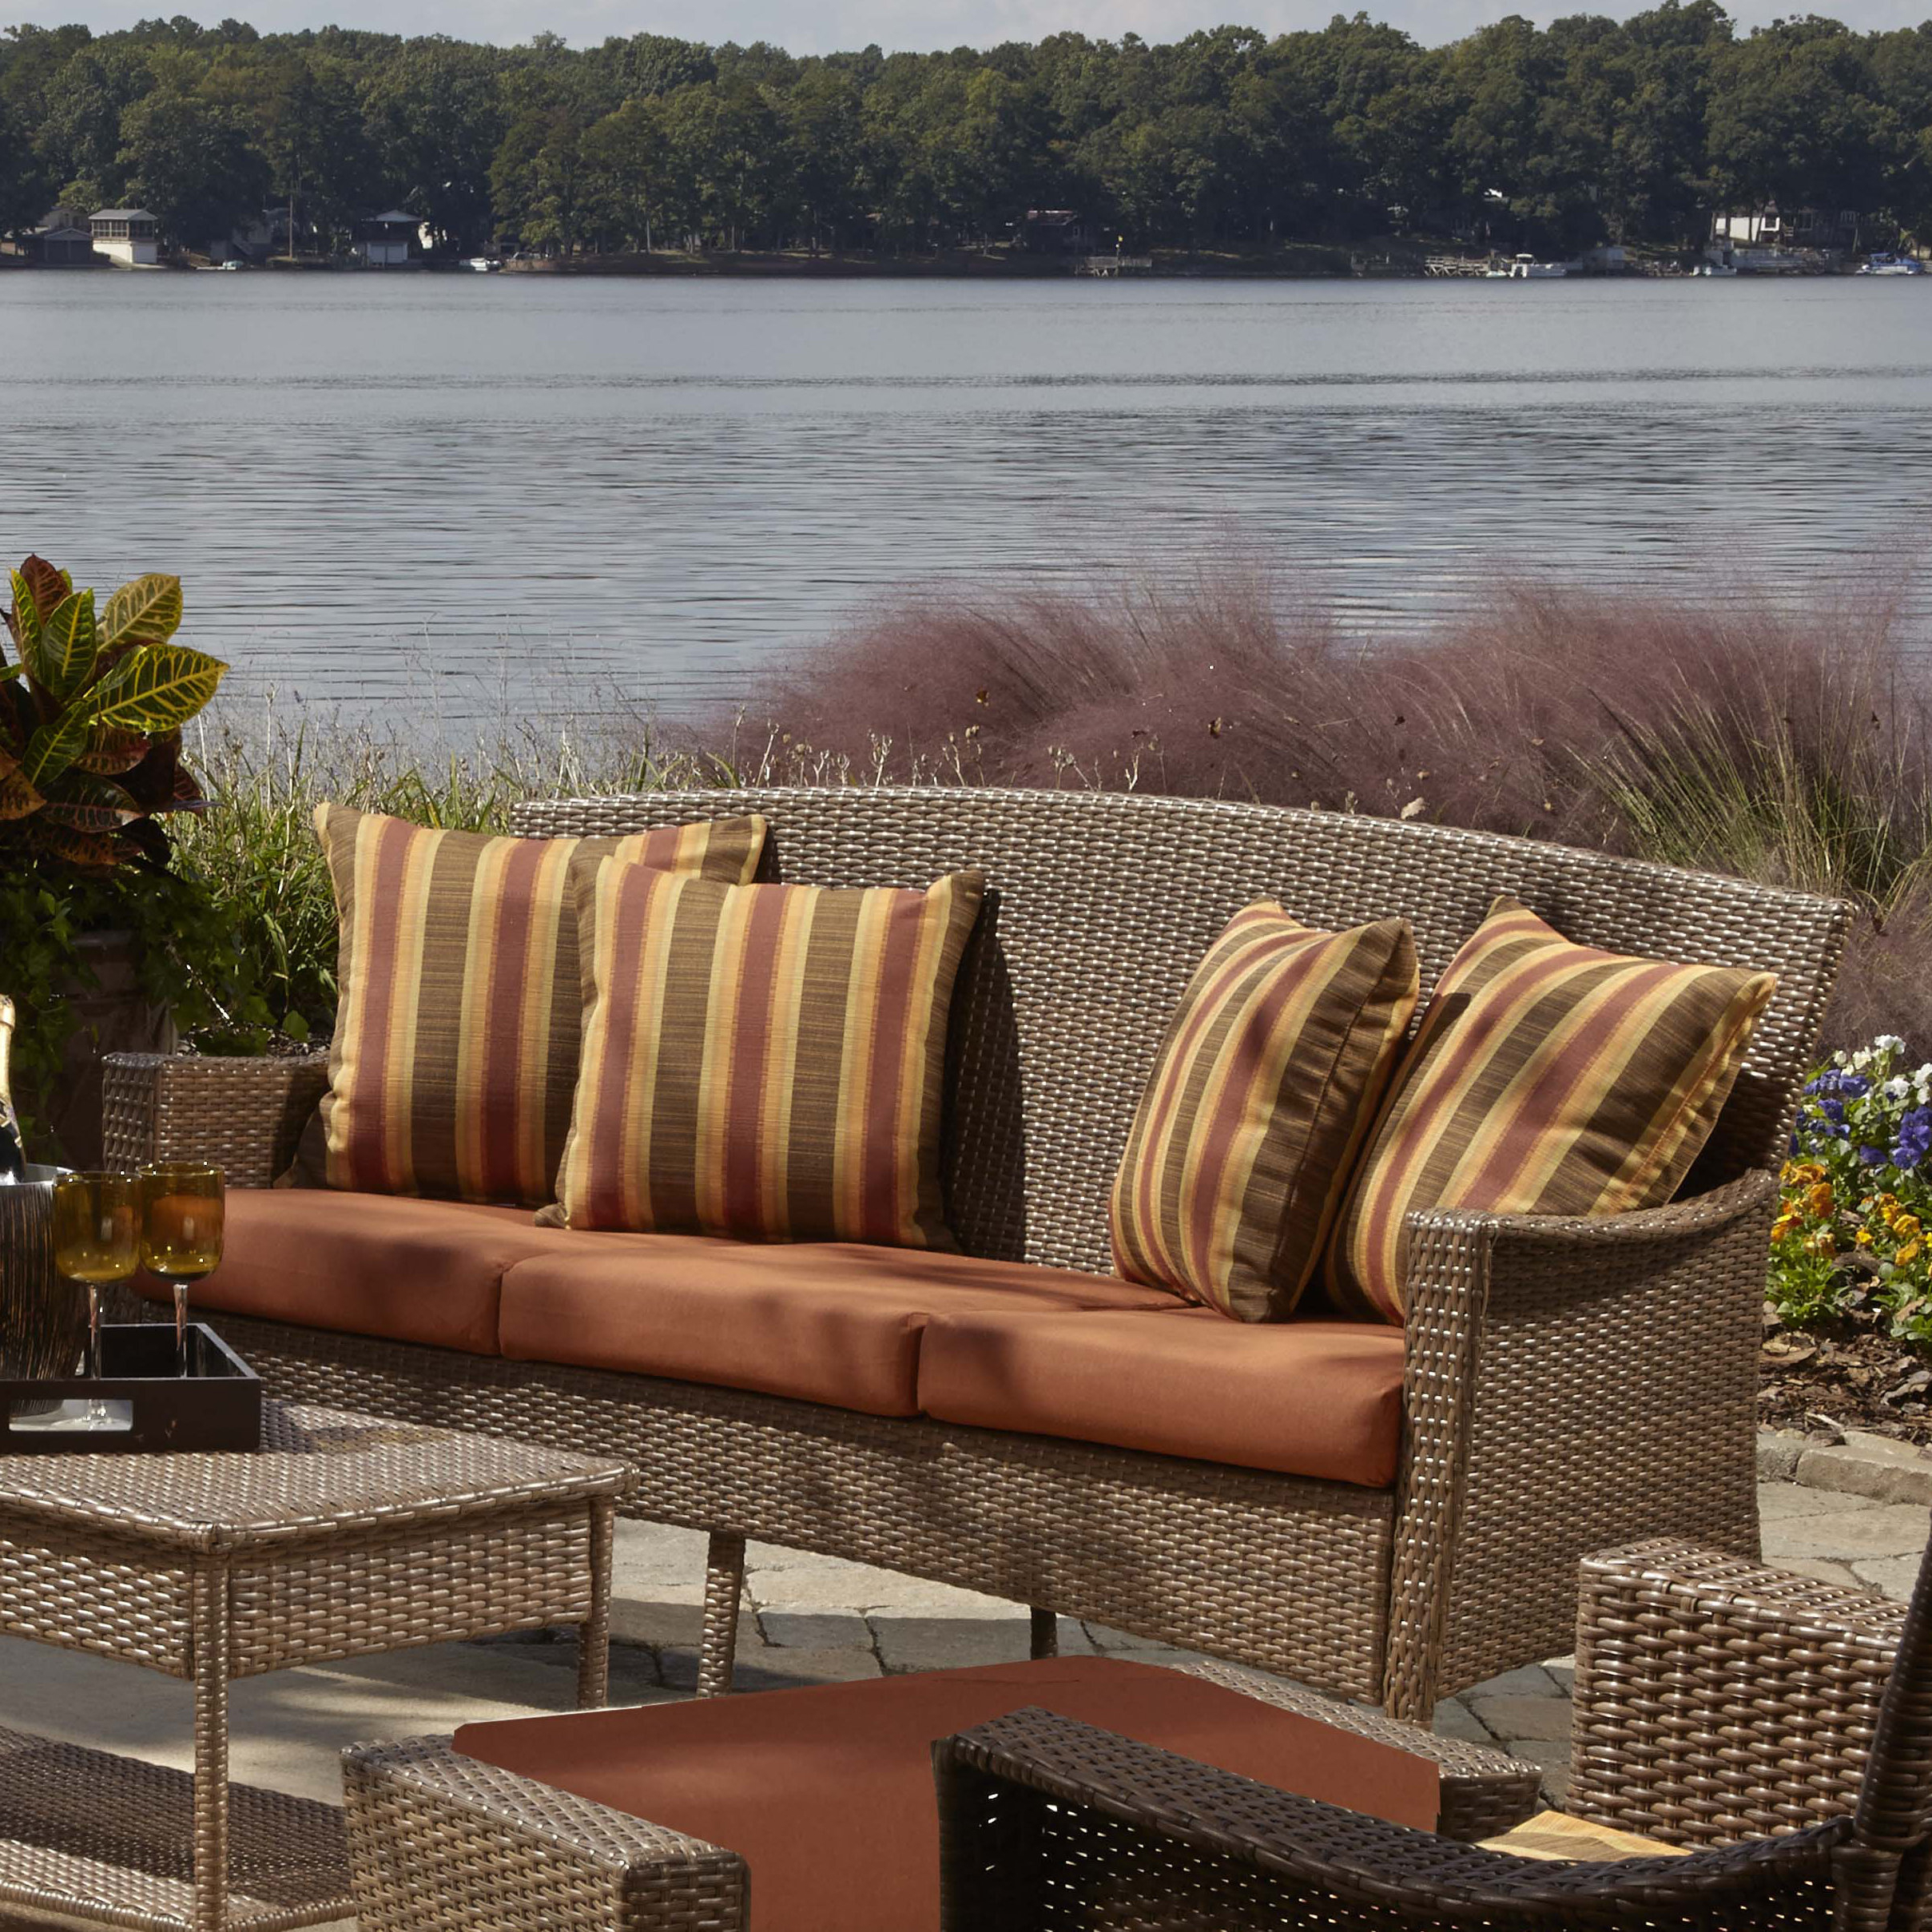 Newest Katzer Patio Sofas With Cushions Within Key Biscayne Patio Sofa With Cushions (View 10 of 20)